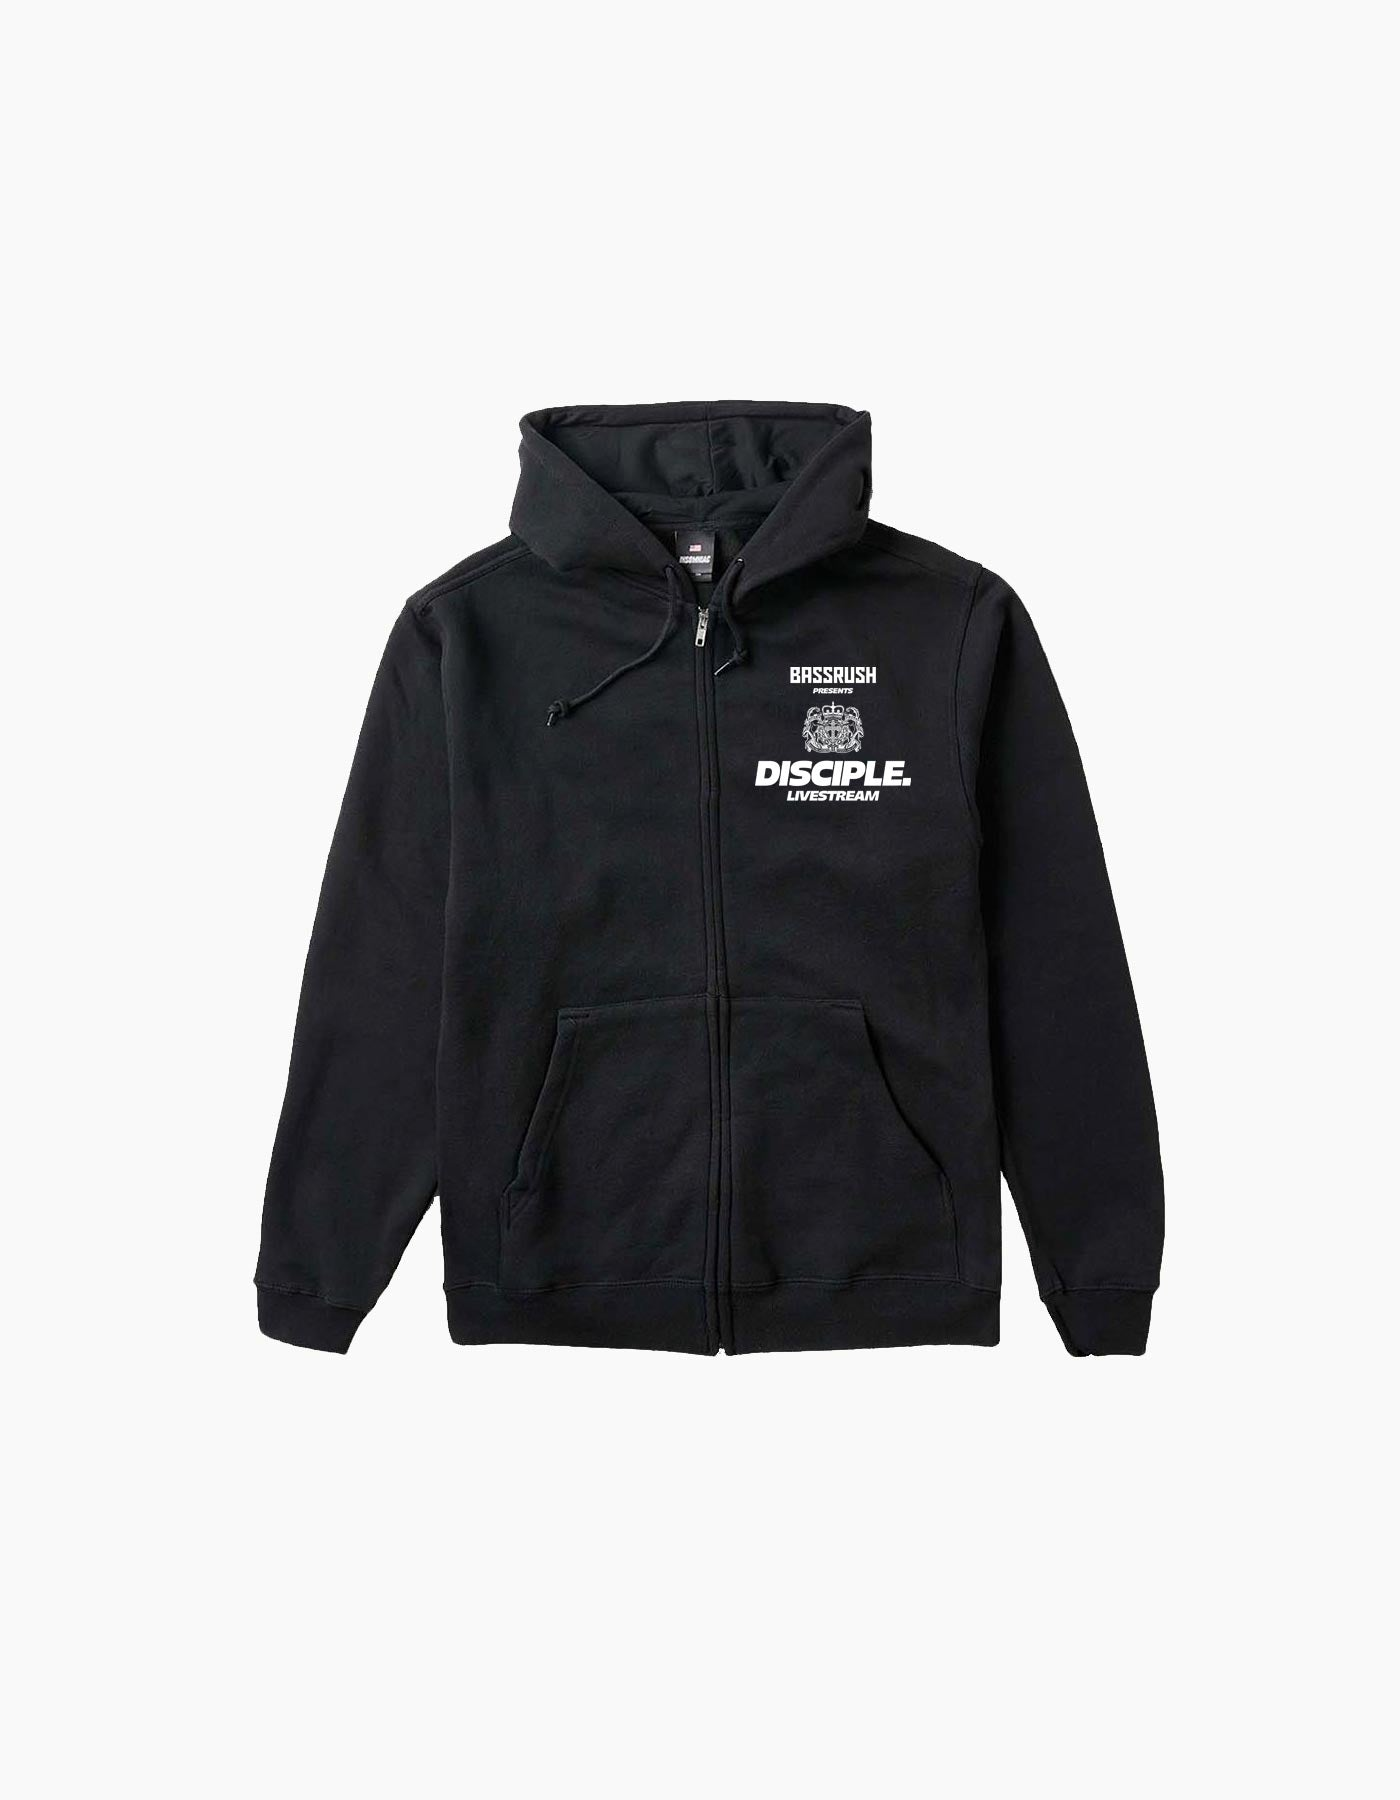 Virtual Bassrush Disciple Zip Up Hoodie